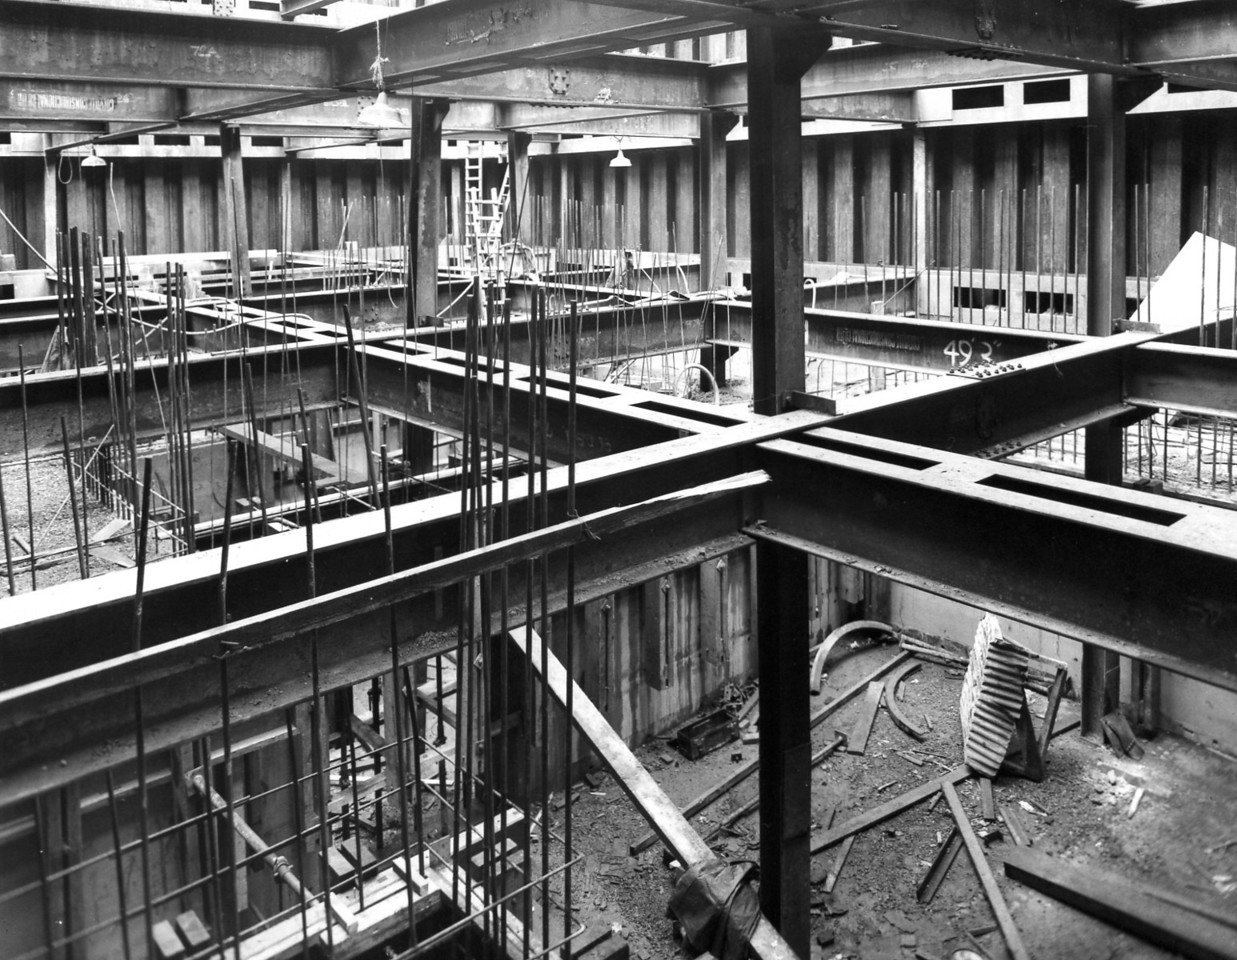 D050	Entrance works - suction chamberwalls in oumphouse  25/10/1962